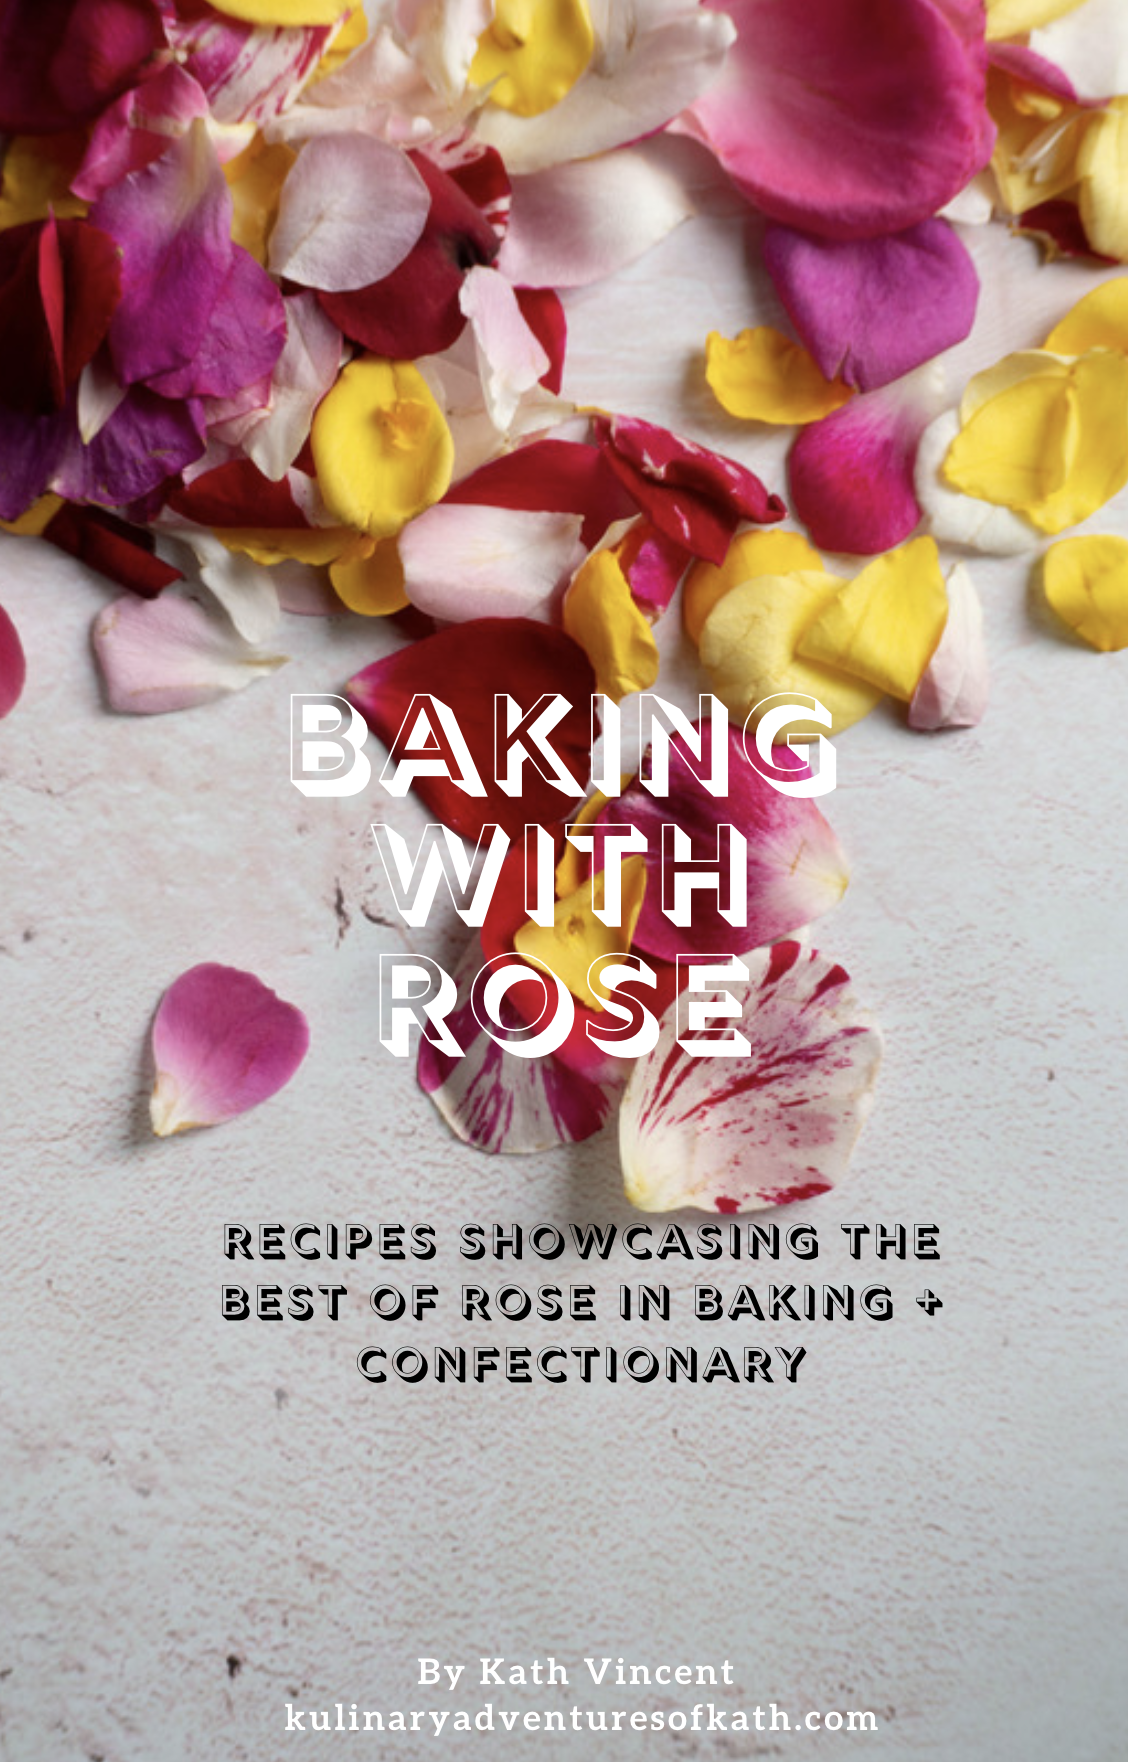 'Baking with Rose' eBook - release date 29/04/2019 - sign up to my mailing list for more information